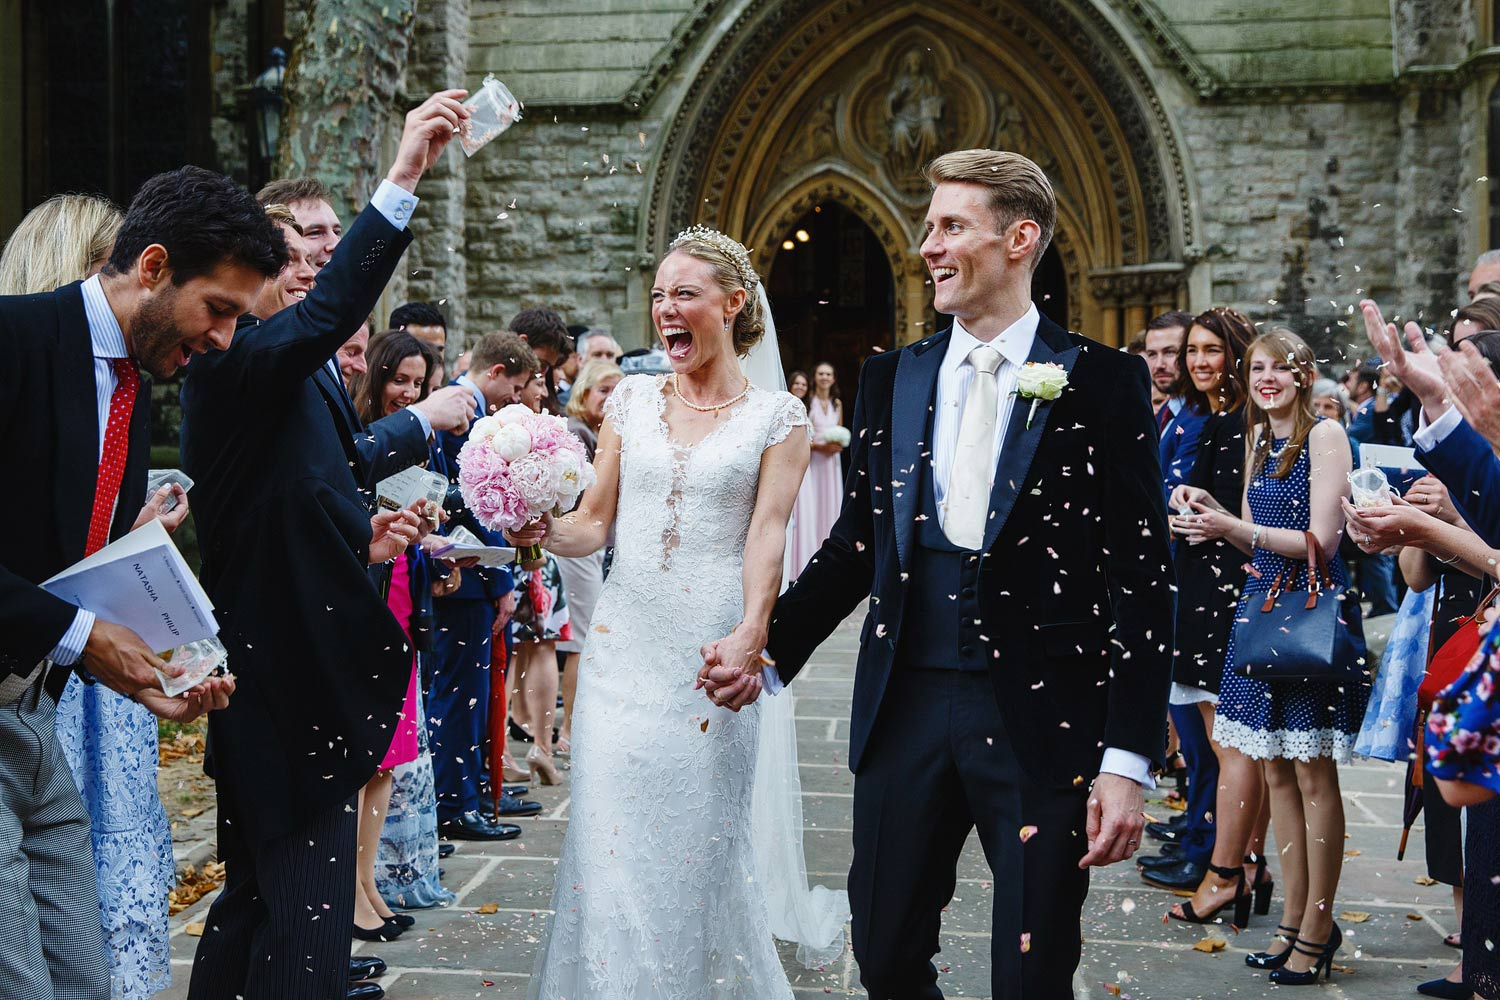 The bride and groom have confetti thrown at them at St Mary's Abbotts in Kensington